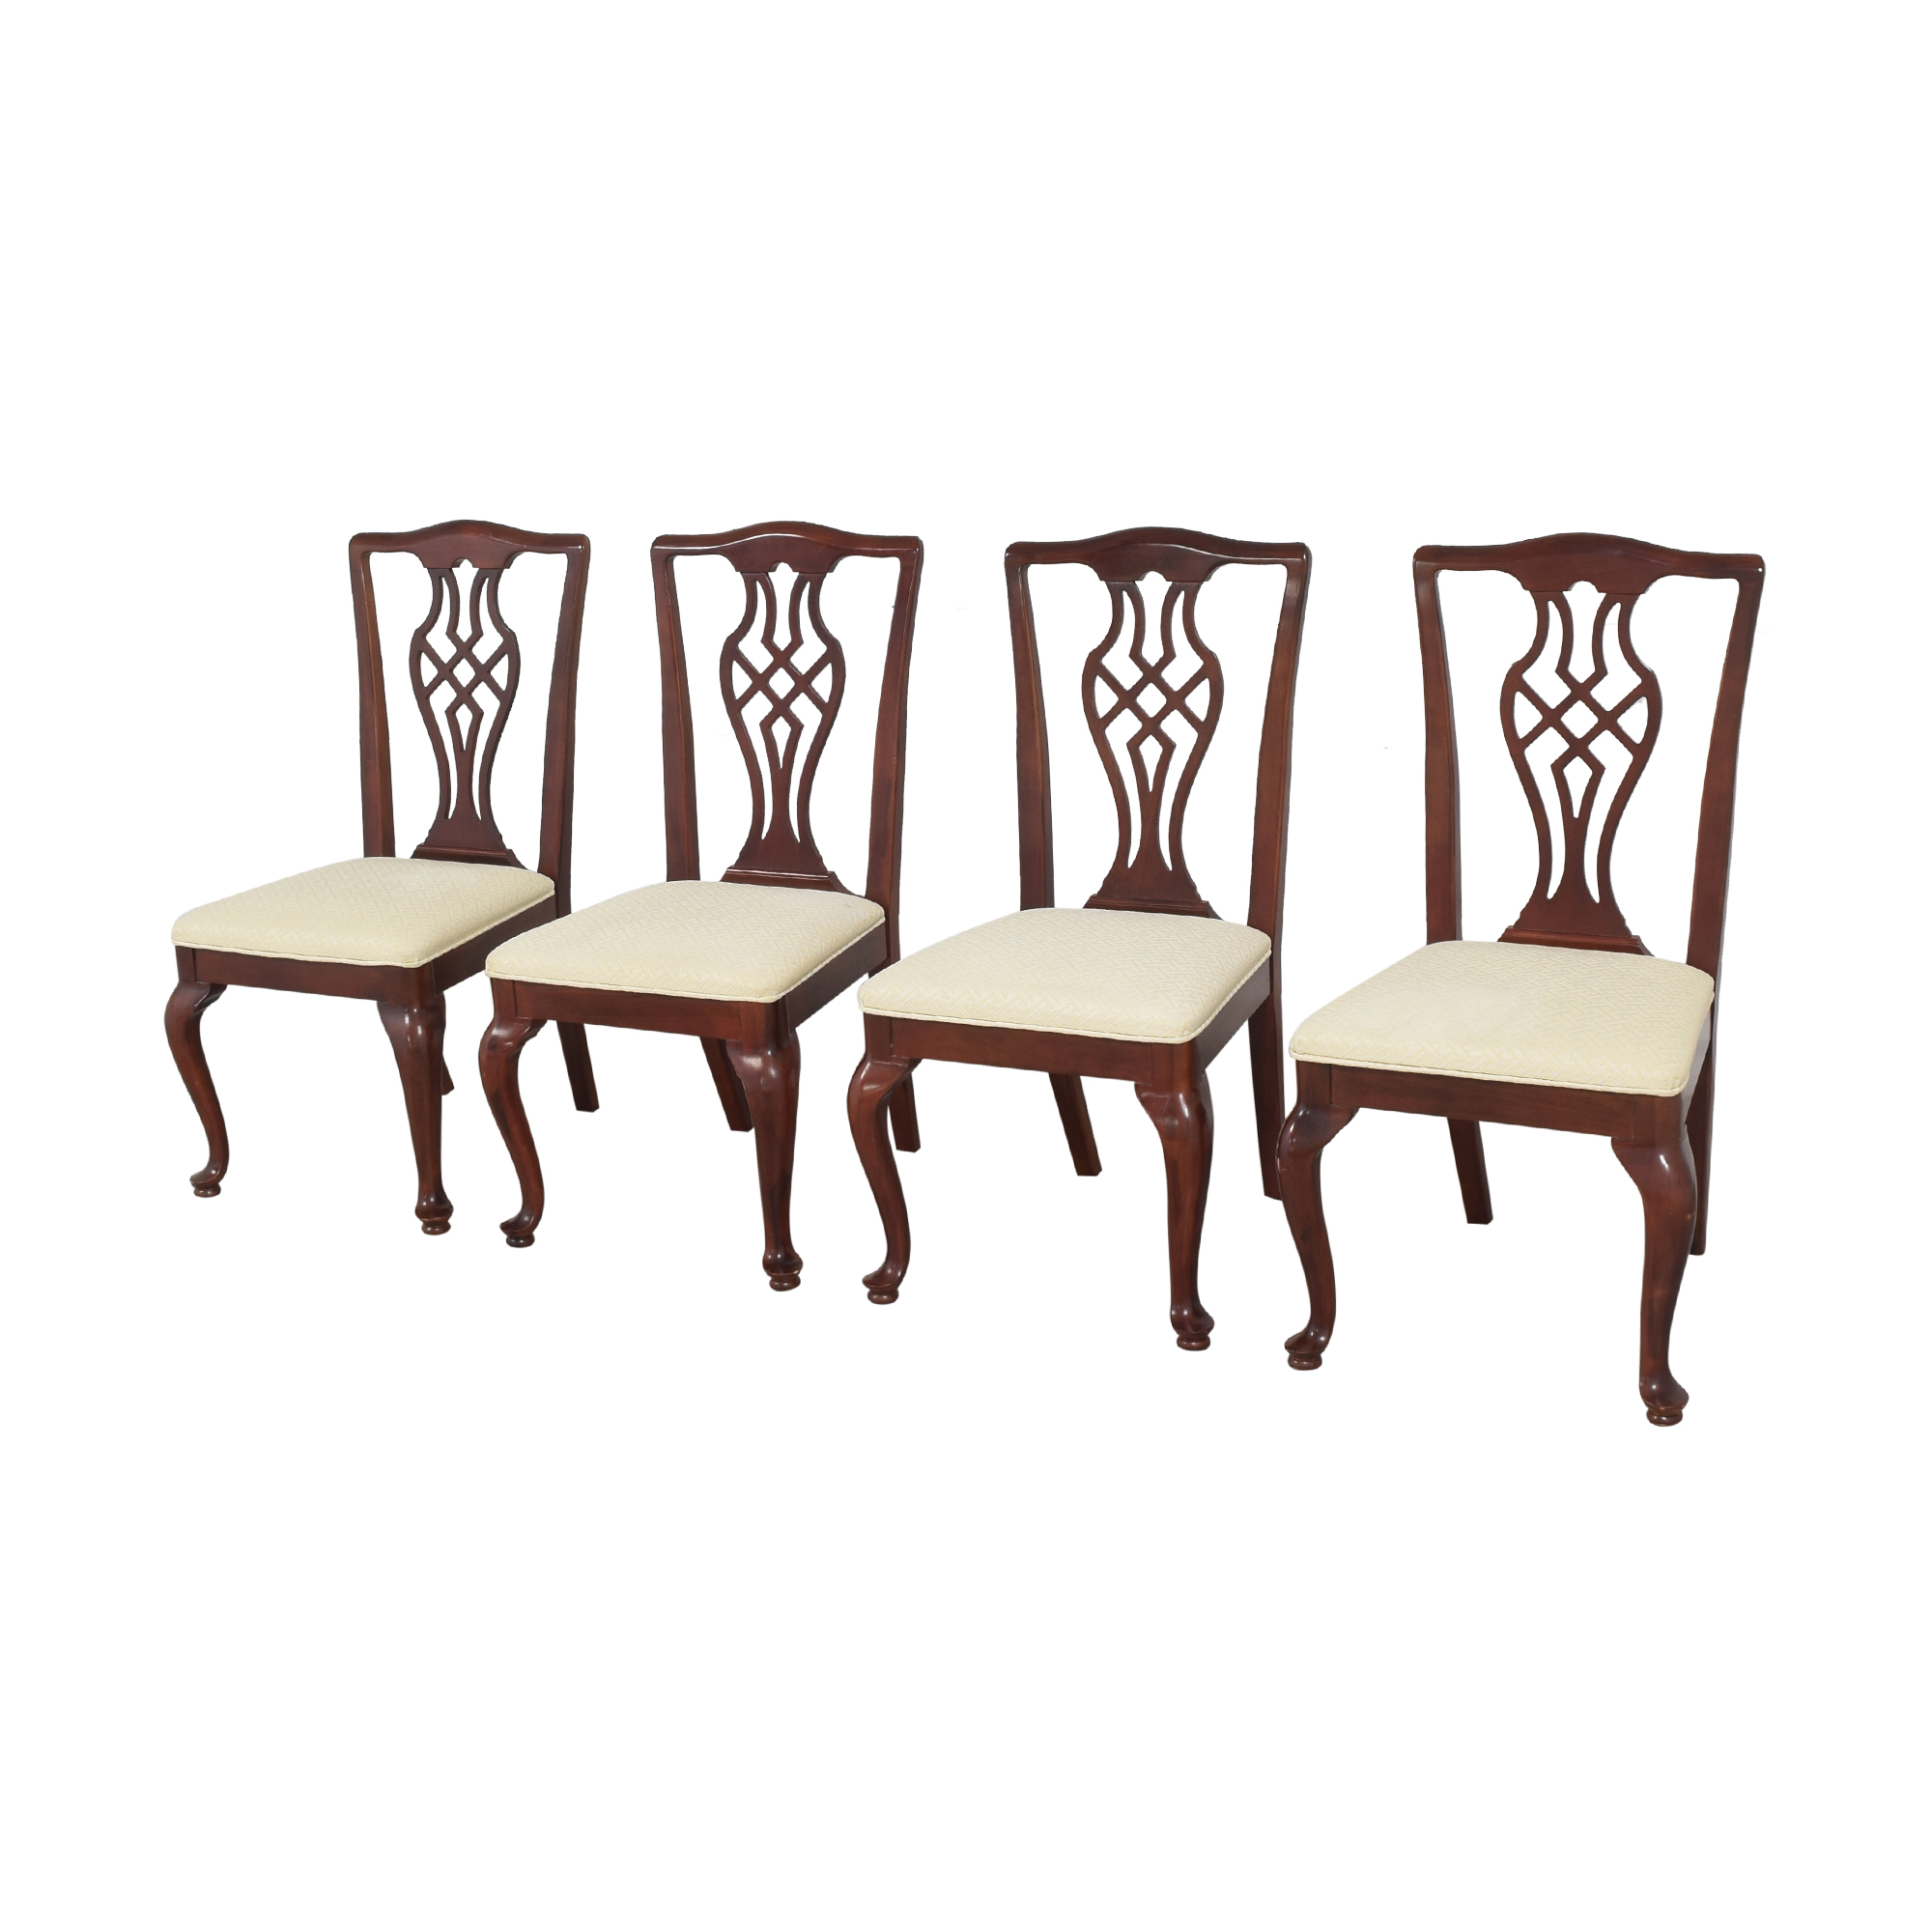 Drexel Heritage Drexel Heritage Chippendale Dining Chairs nyc